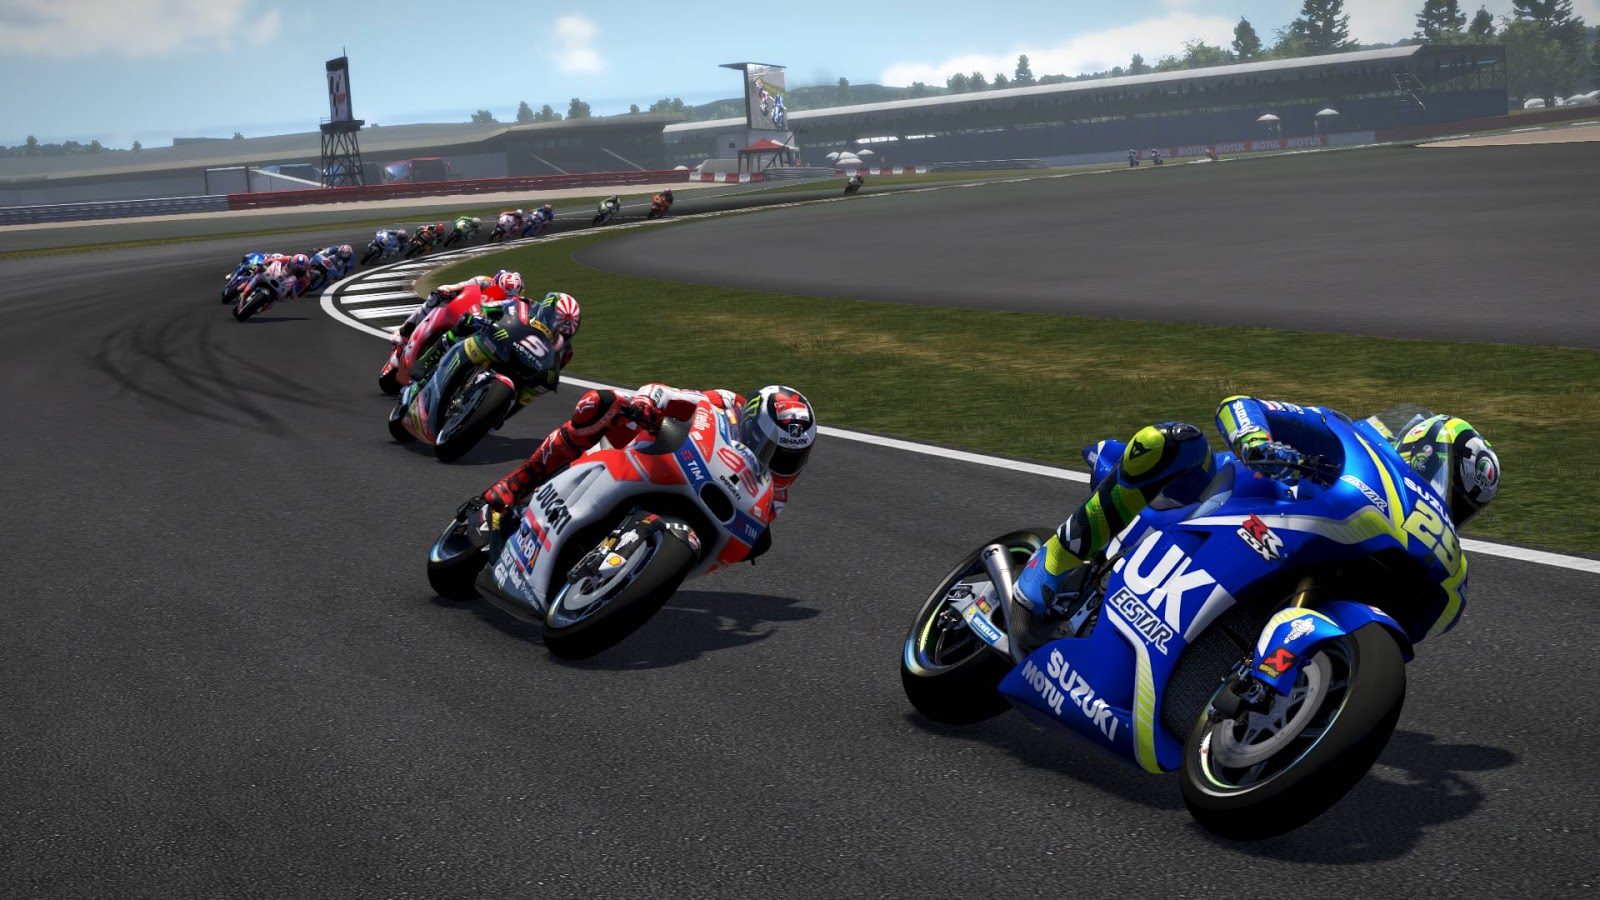 New Games: MOTOGP 17 (PS4, PC, Xbox One) | The Entertainment Factor